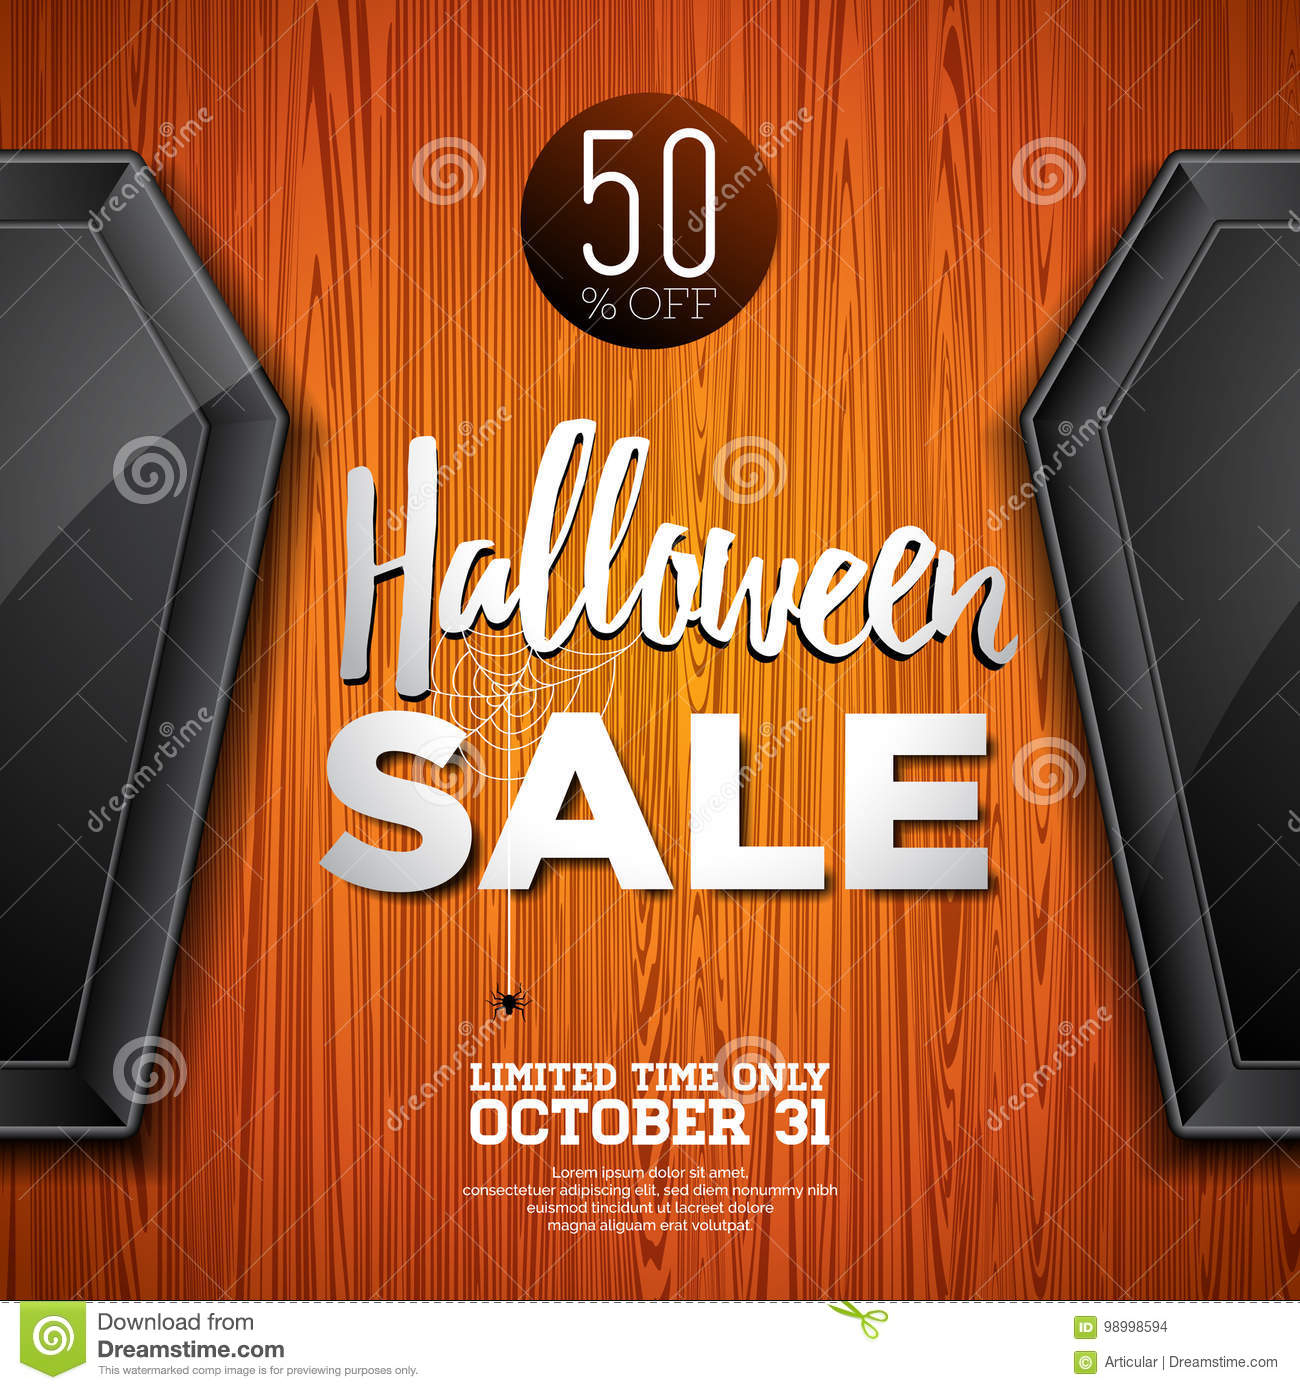 download halloween sale vector illustration with coffin and holiday elements on wood texture background design